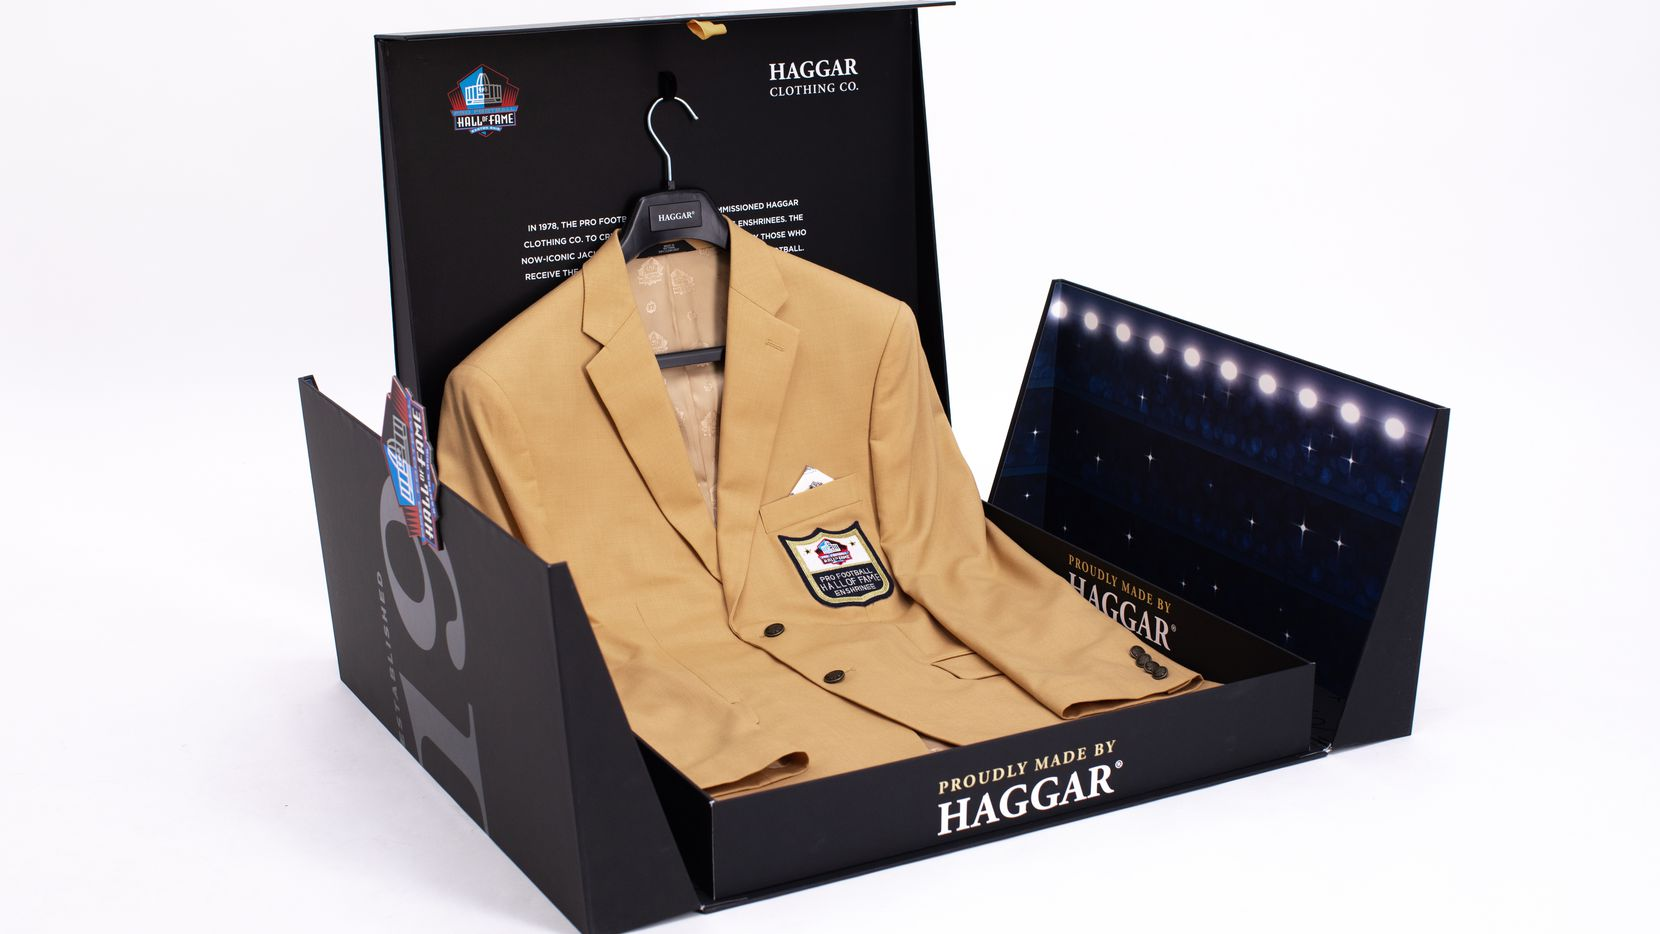 Because of the pandemic, Pro Football Hall of Famers in the Class of 2020, including Jimmy Johnson and Cliff Harris, were sent their Haggar gold blazers in a specially designed box.